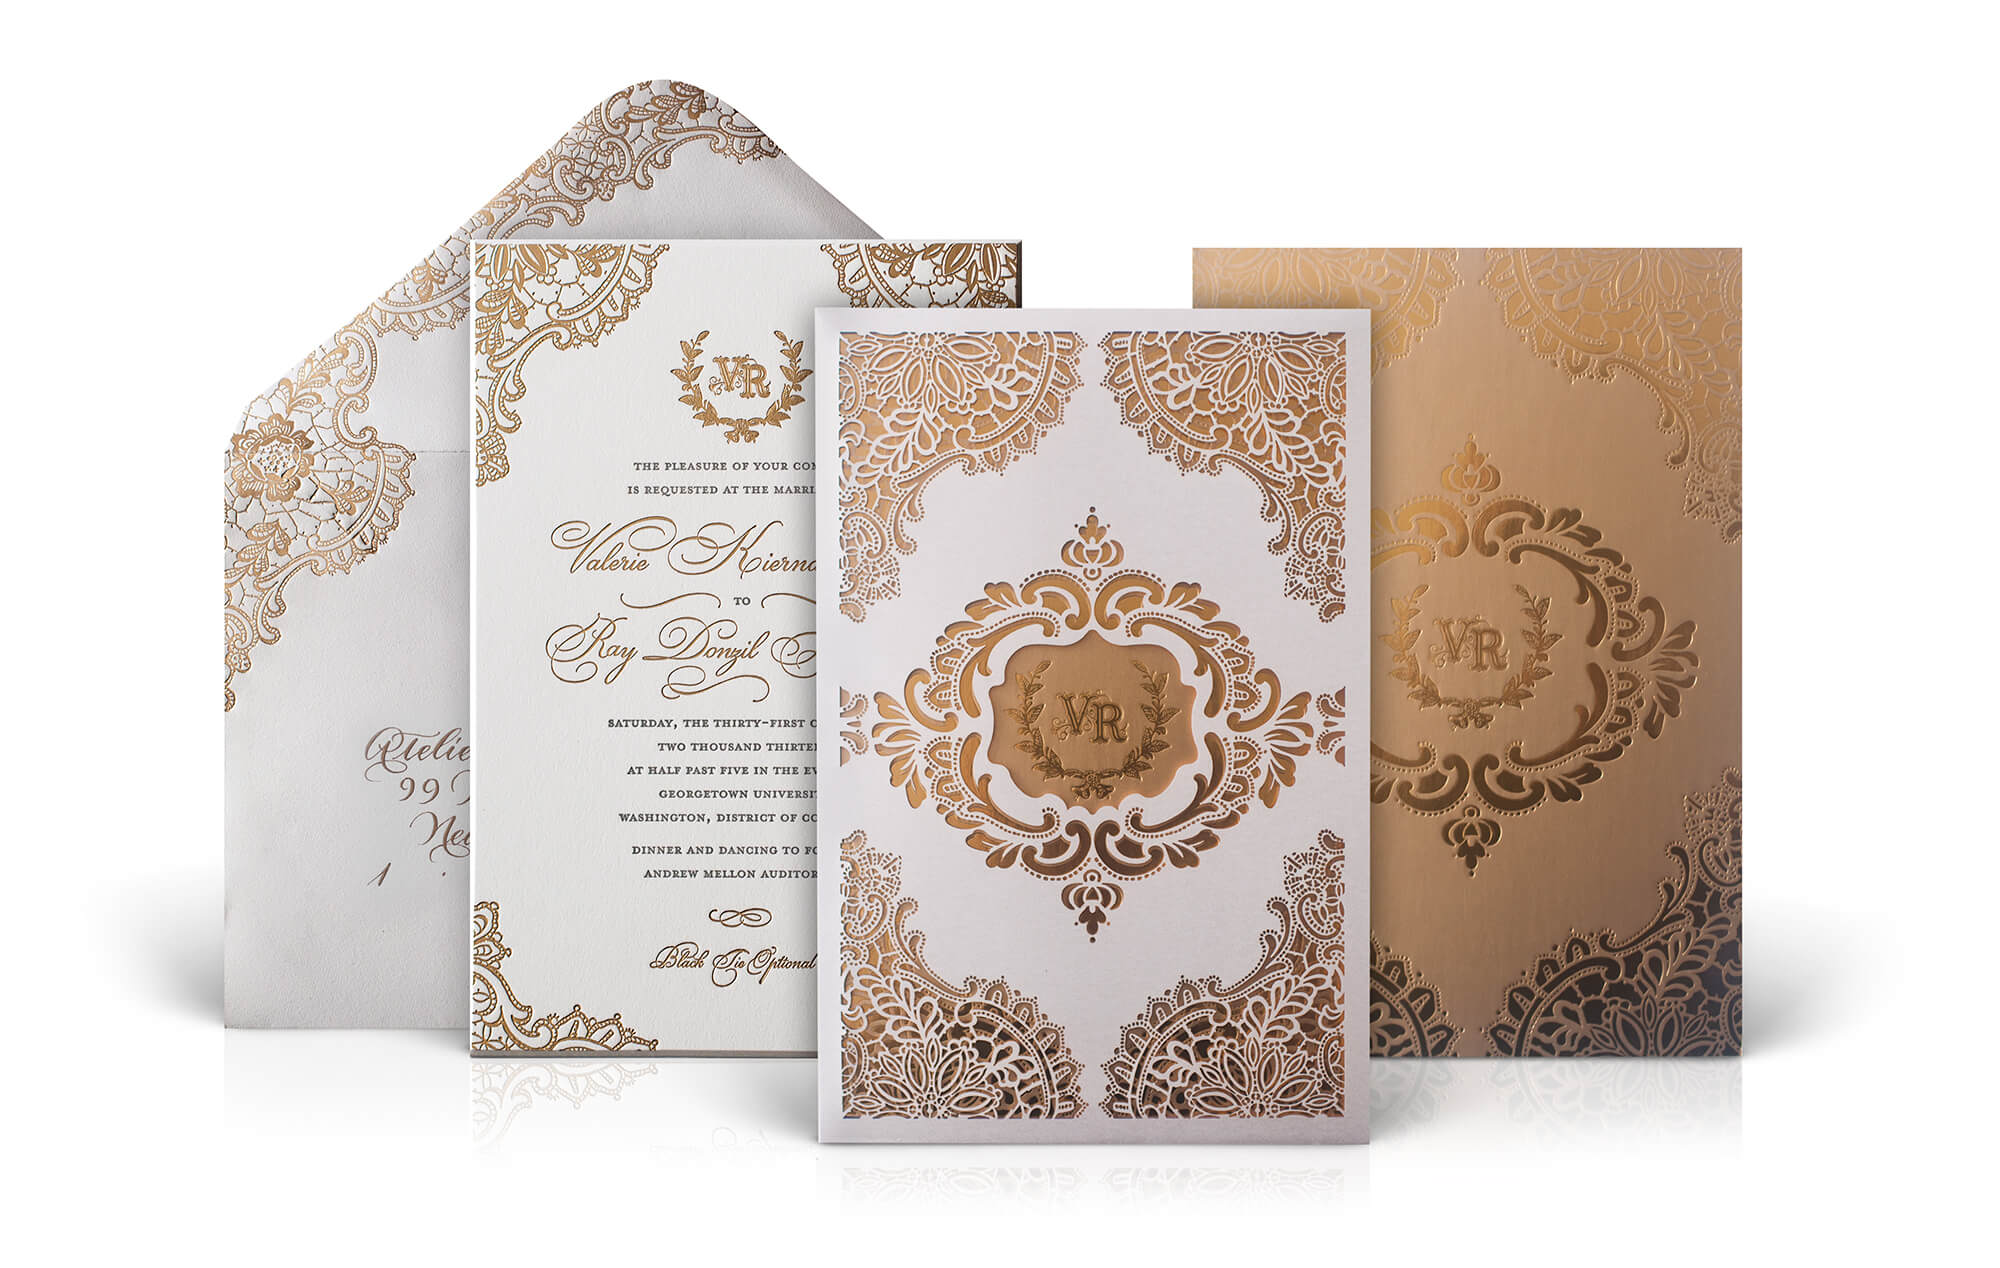 Luxury laser cut wedding invitation with lace motifs